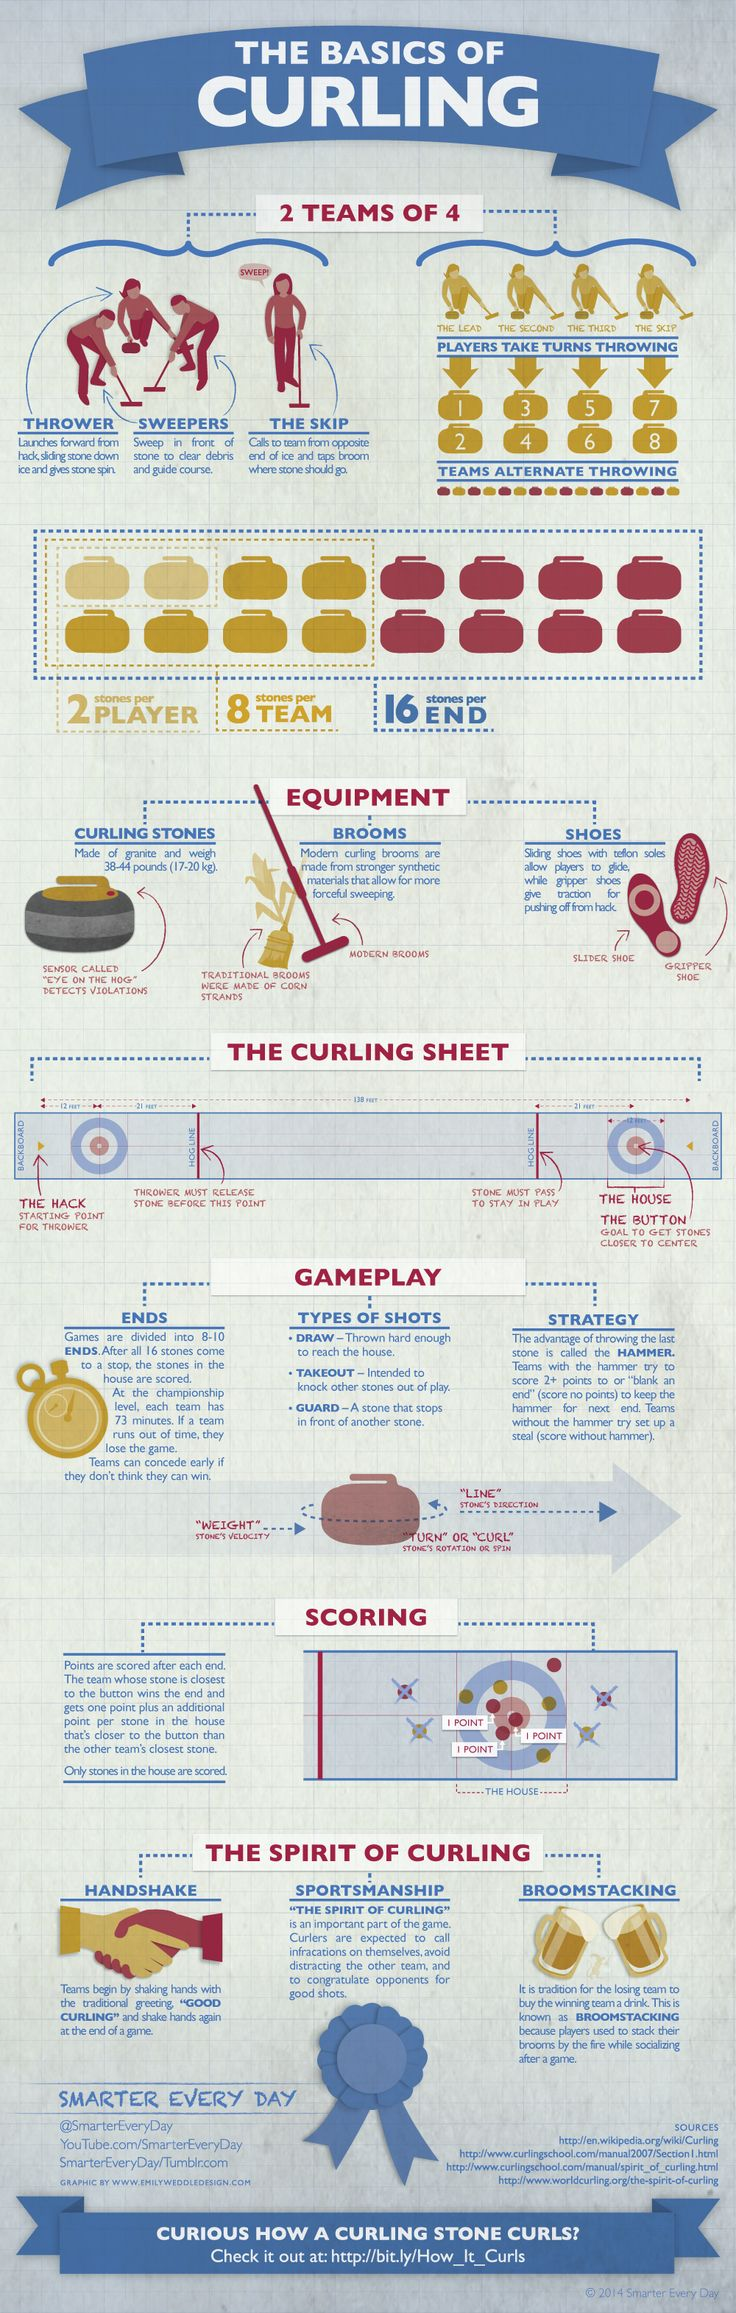 The basics of curling #infographic #sport